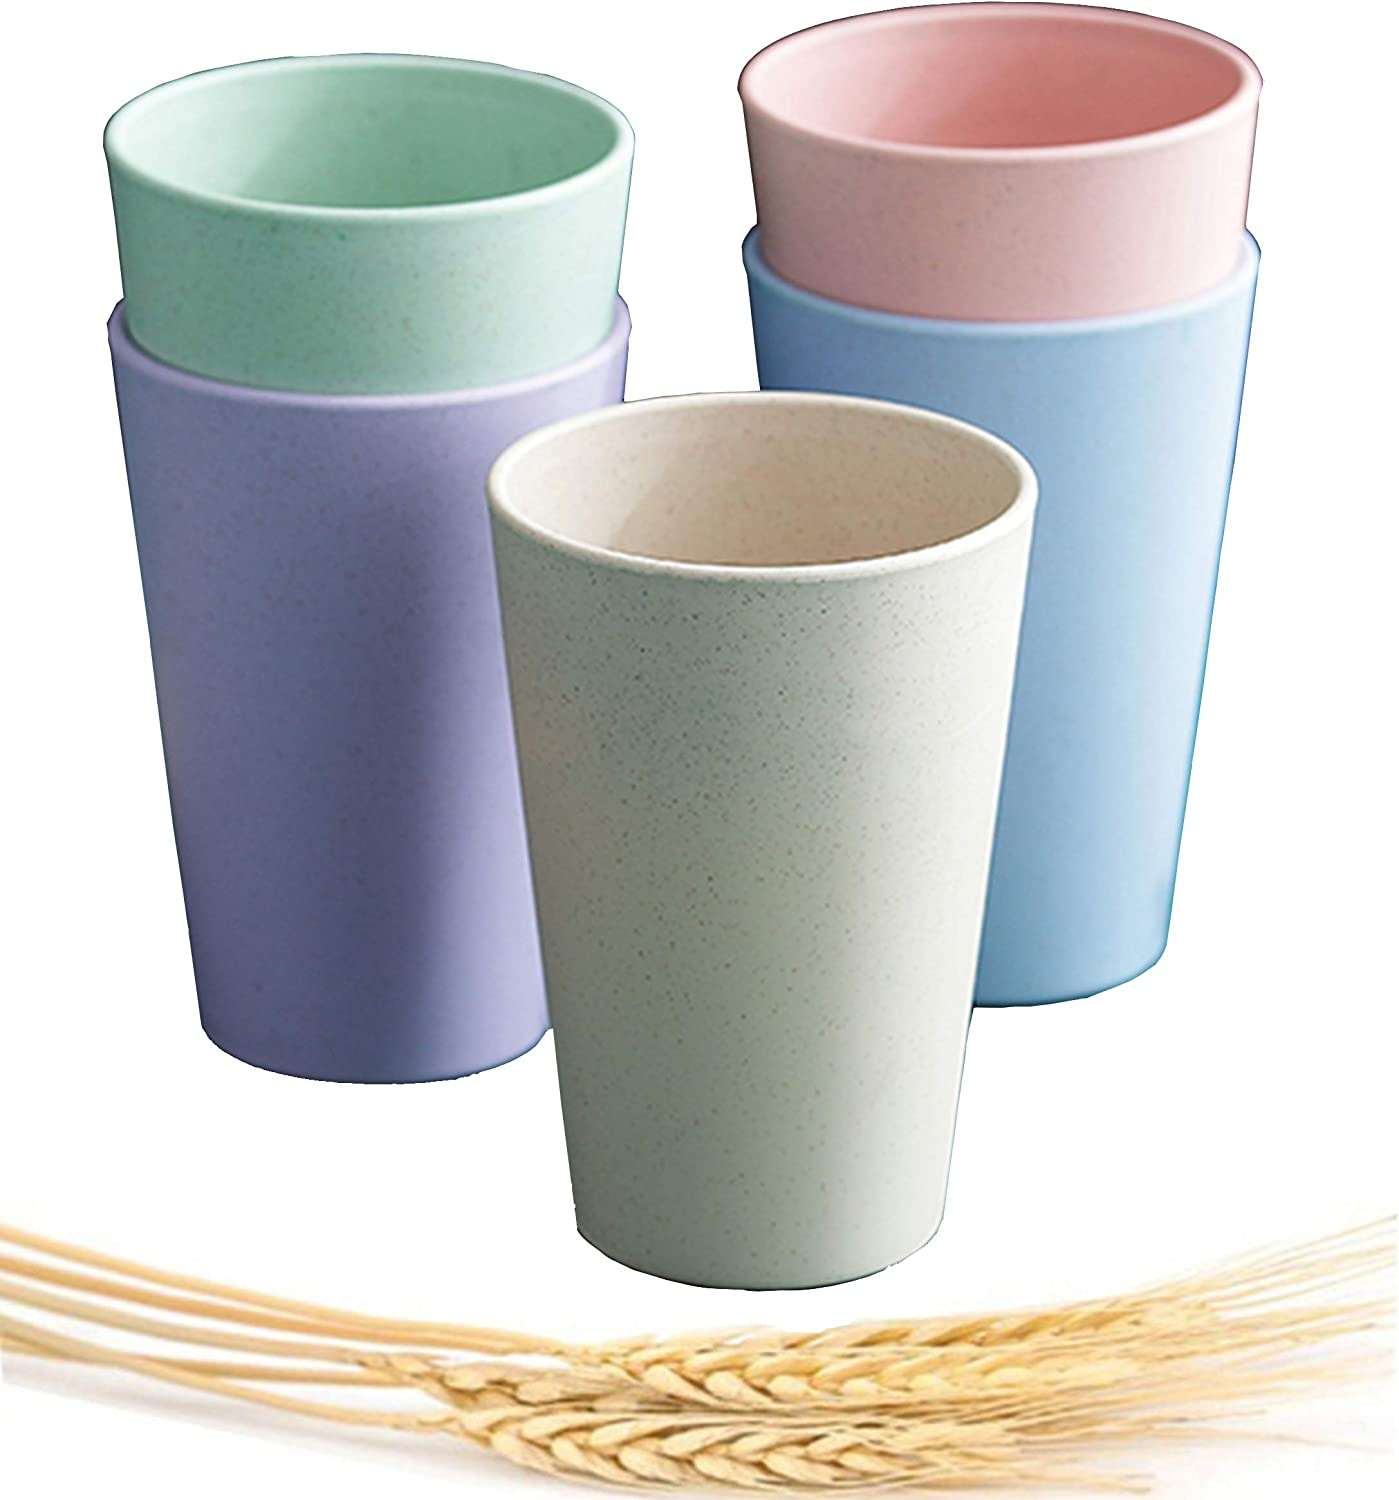 Choary Max 55% OFF Wheat Now on sale Straw Cup drinkin Eco-friendly Reusable Unbreakable